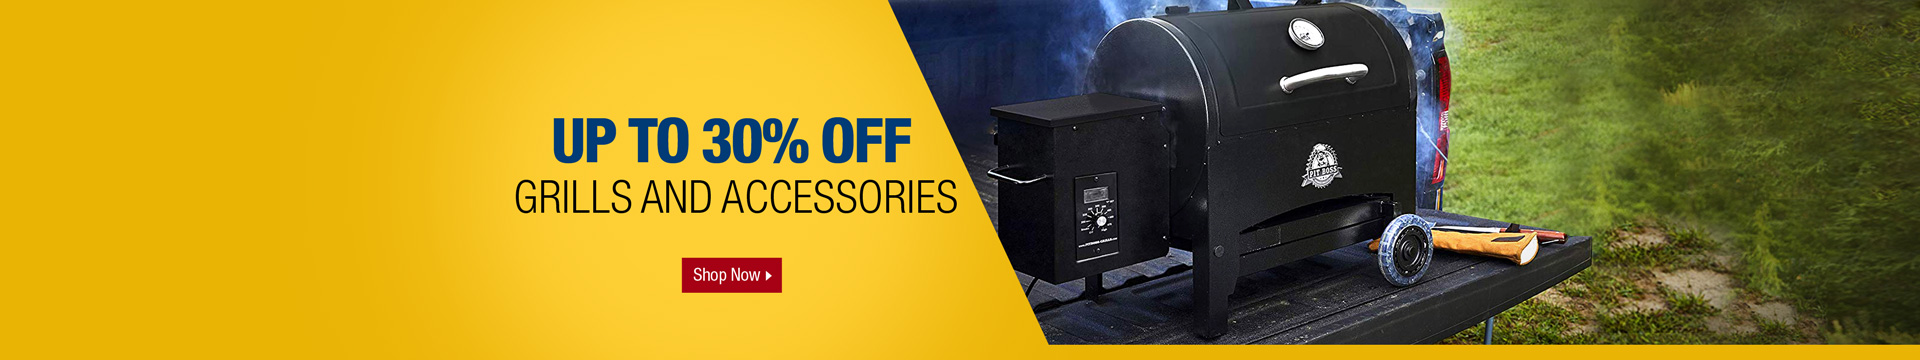 UP TO 30% OFF GRILLS AND ACCESSORIES